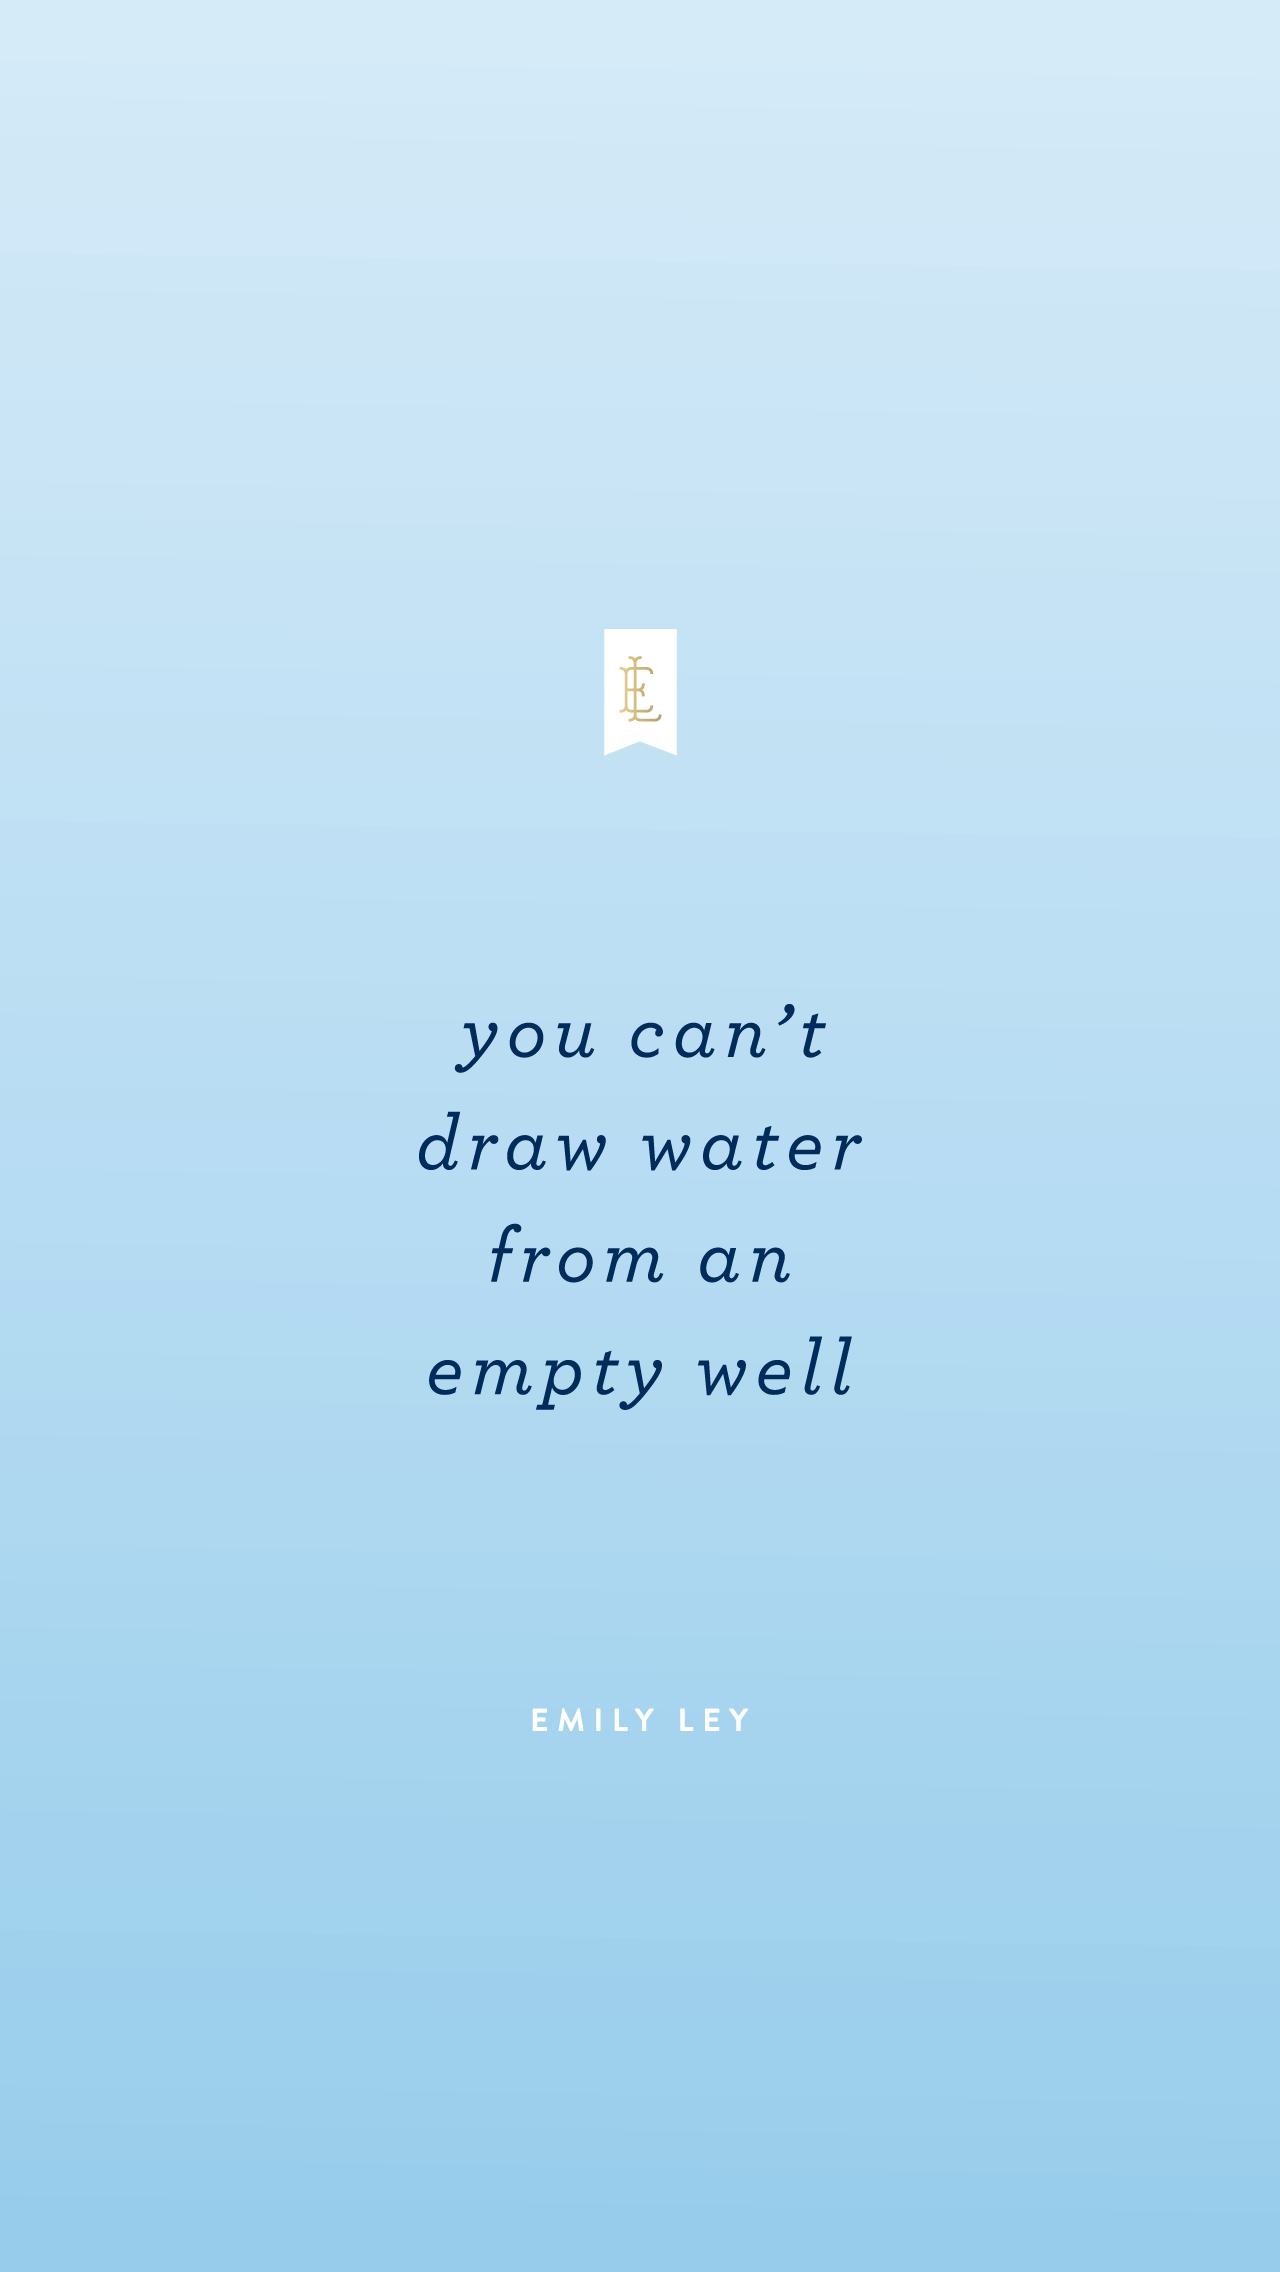 Each Month We Send A New Phone Wallpaper To Our Newsletter List If You Missed A Month Or Just Want To Mix T Emily Ley Quotes Emily Ley Phone Wallpaper Quotes